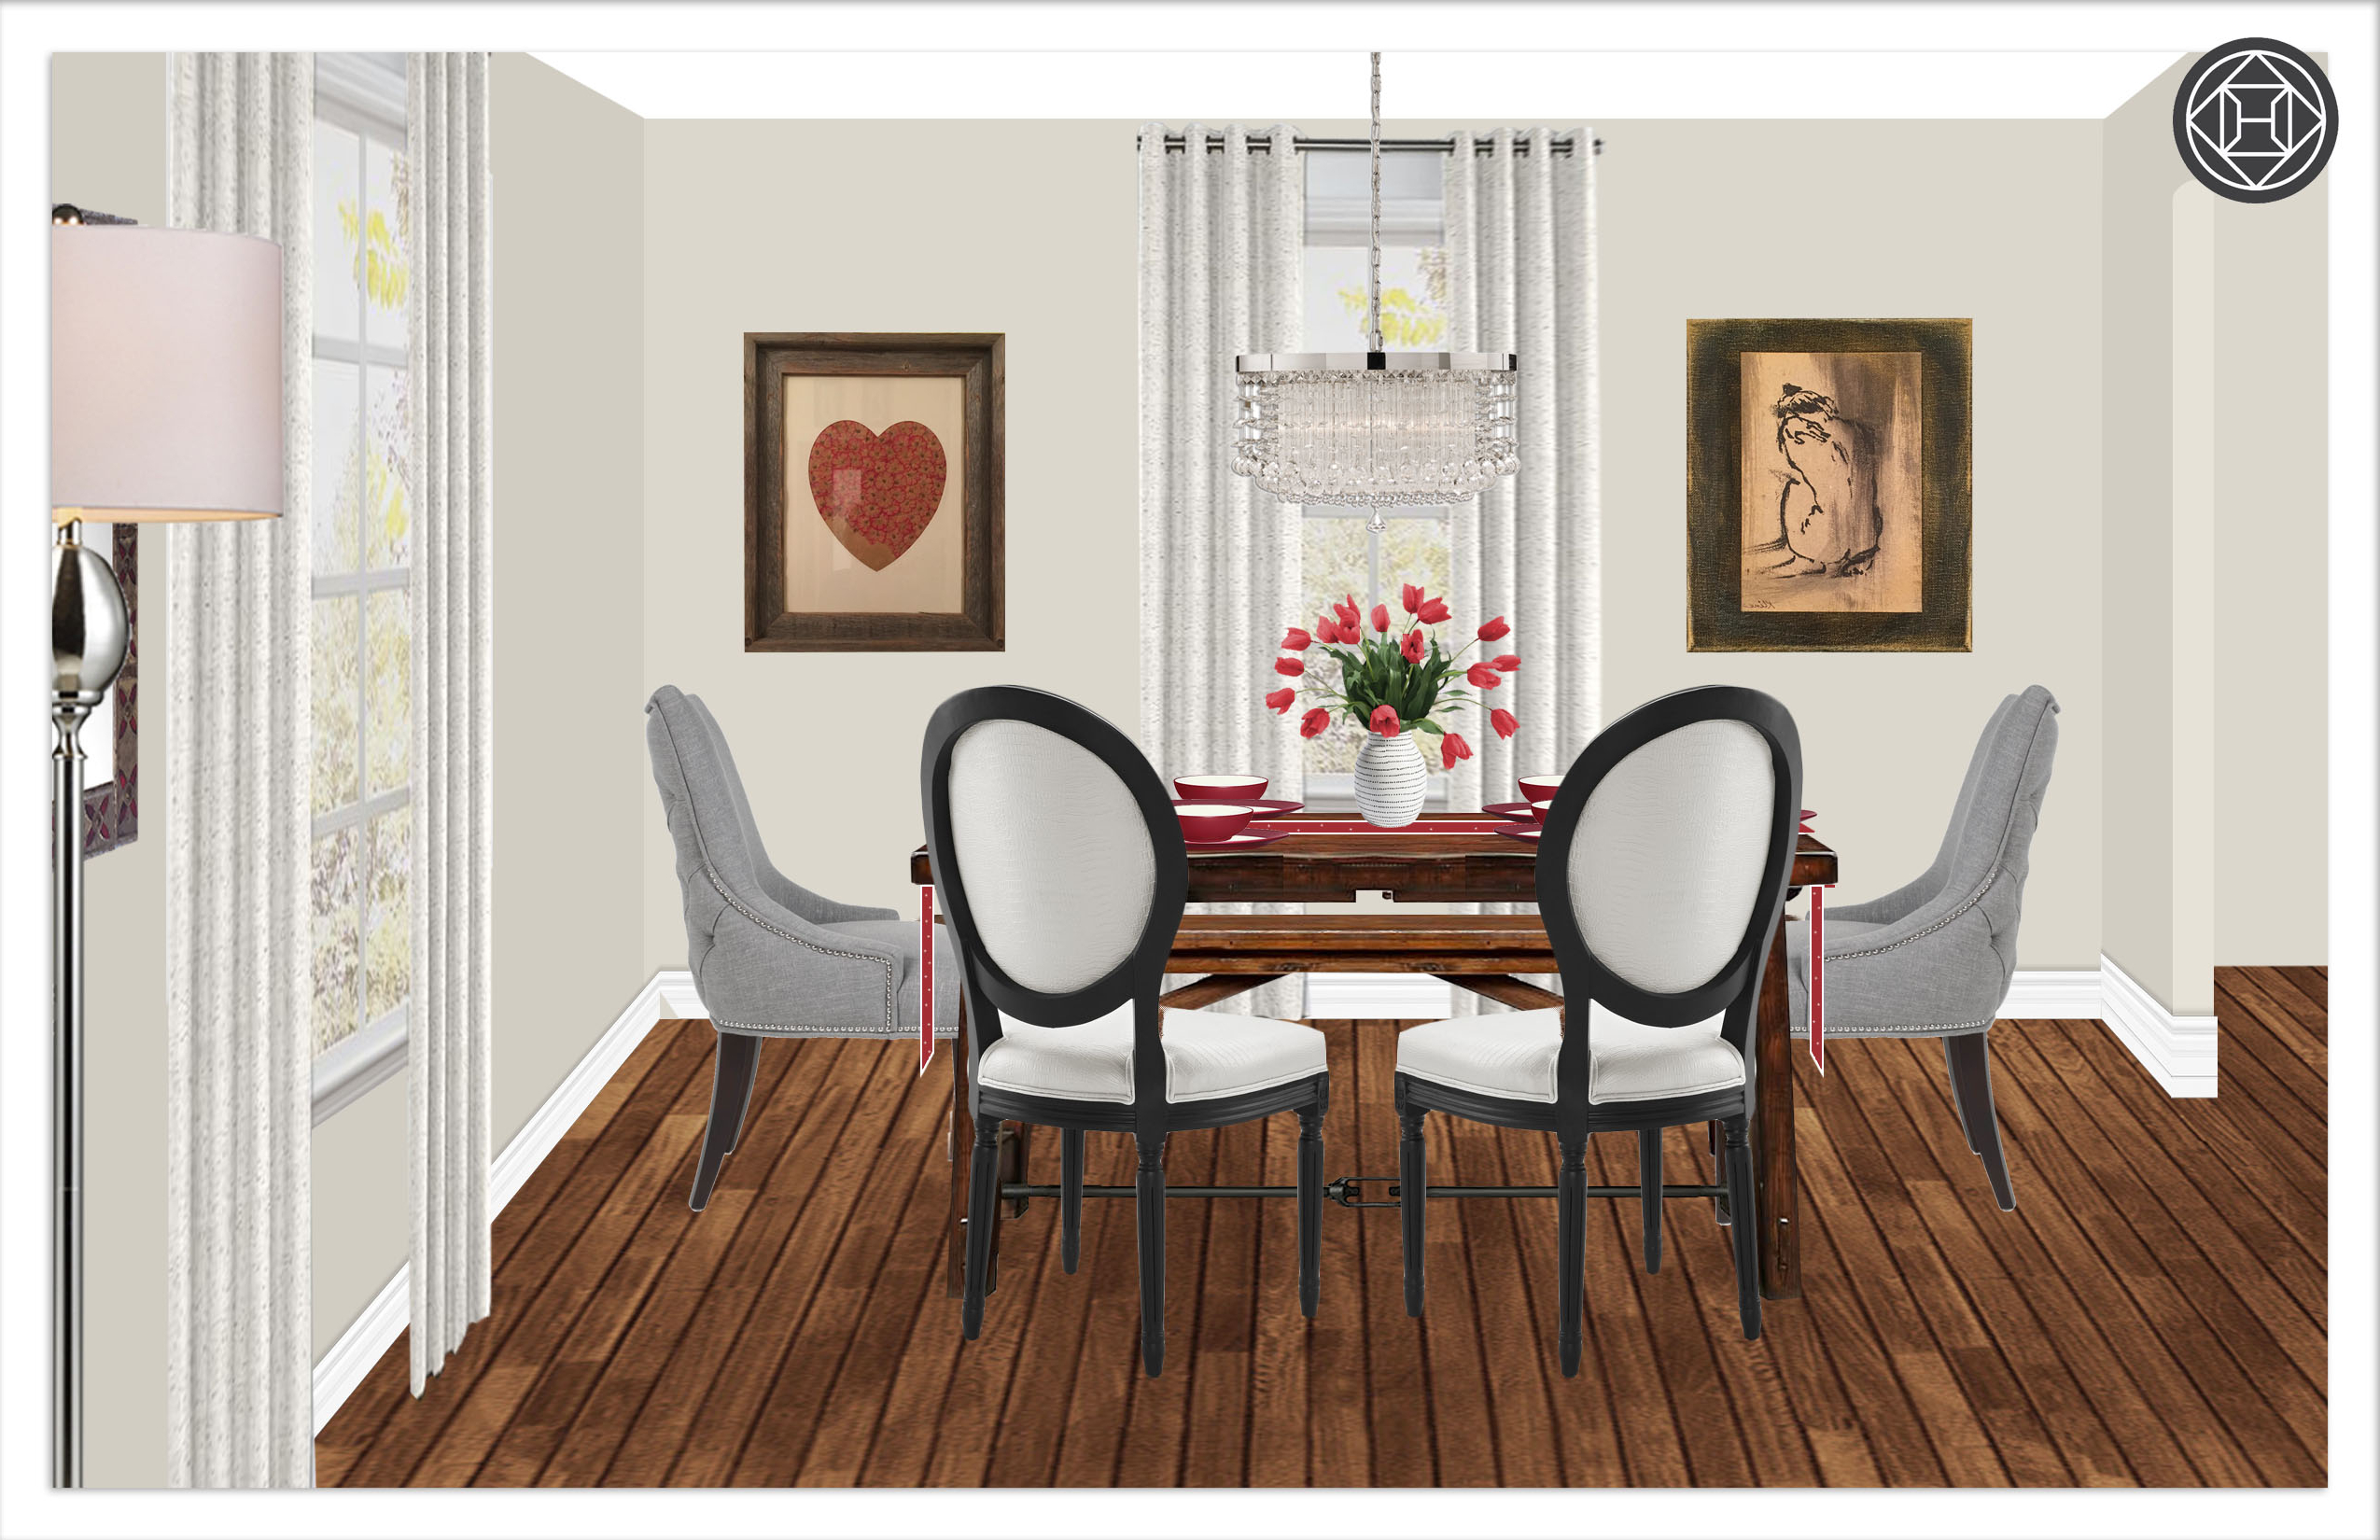 Newest Contemporary, Classic, Eclectic, Rustic Dining Room Design pertaining to Tuscan Chestnut Toscana Dining Tables